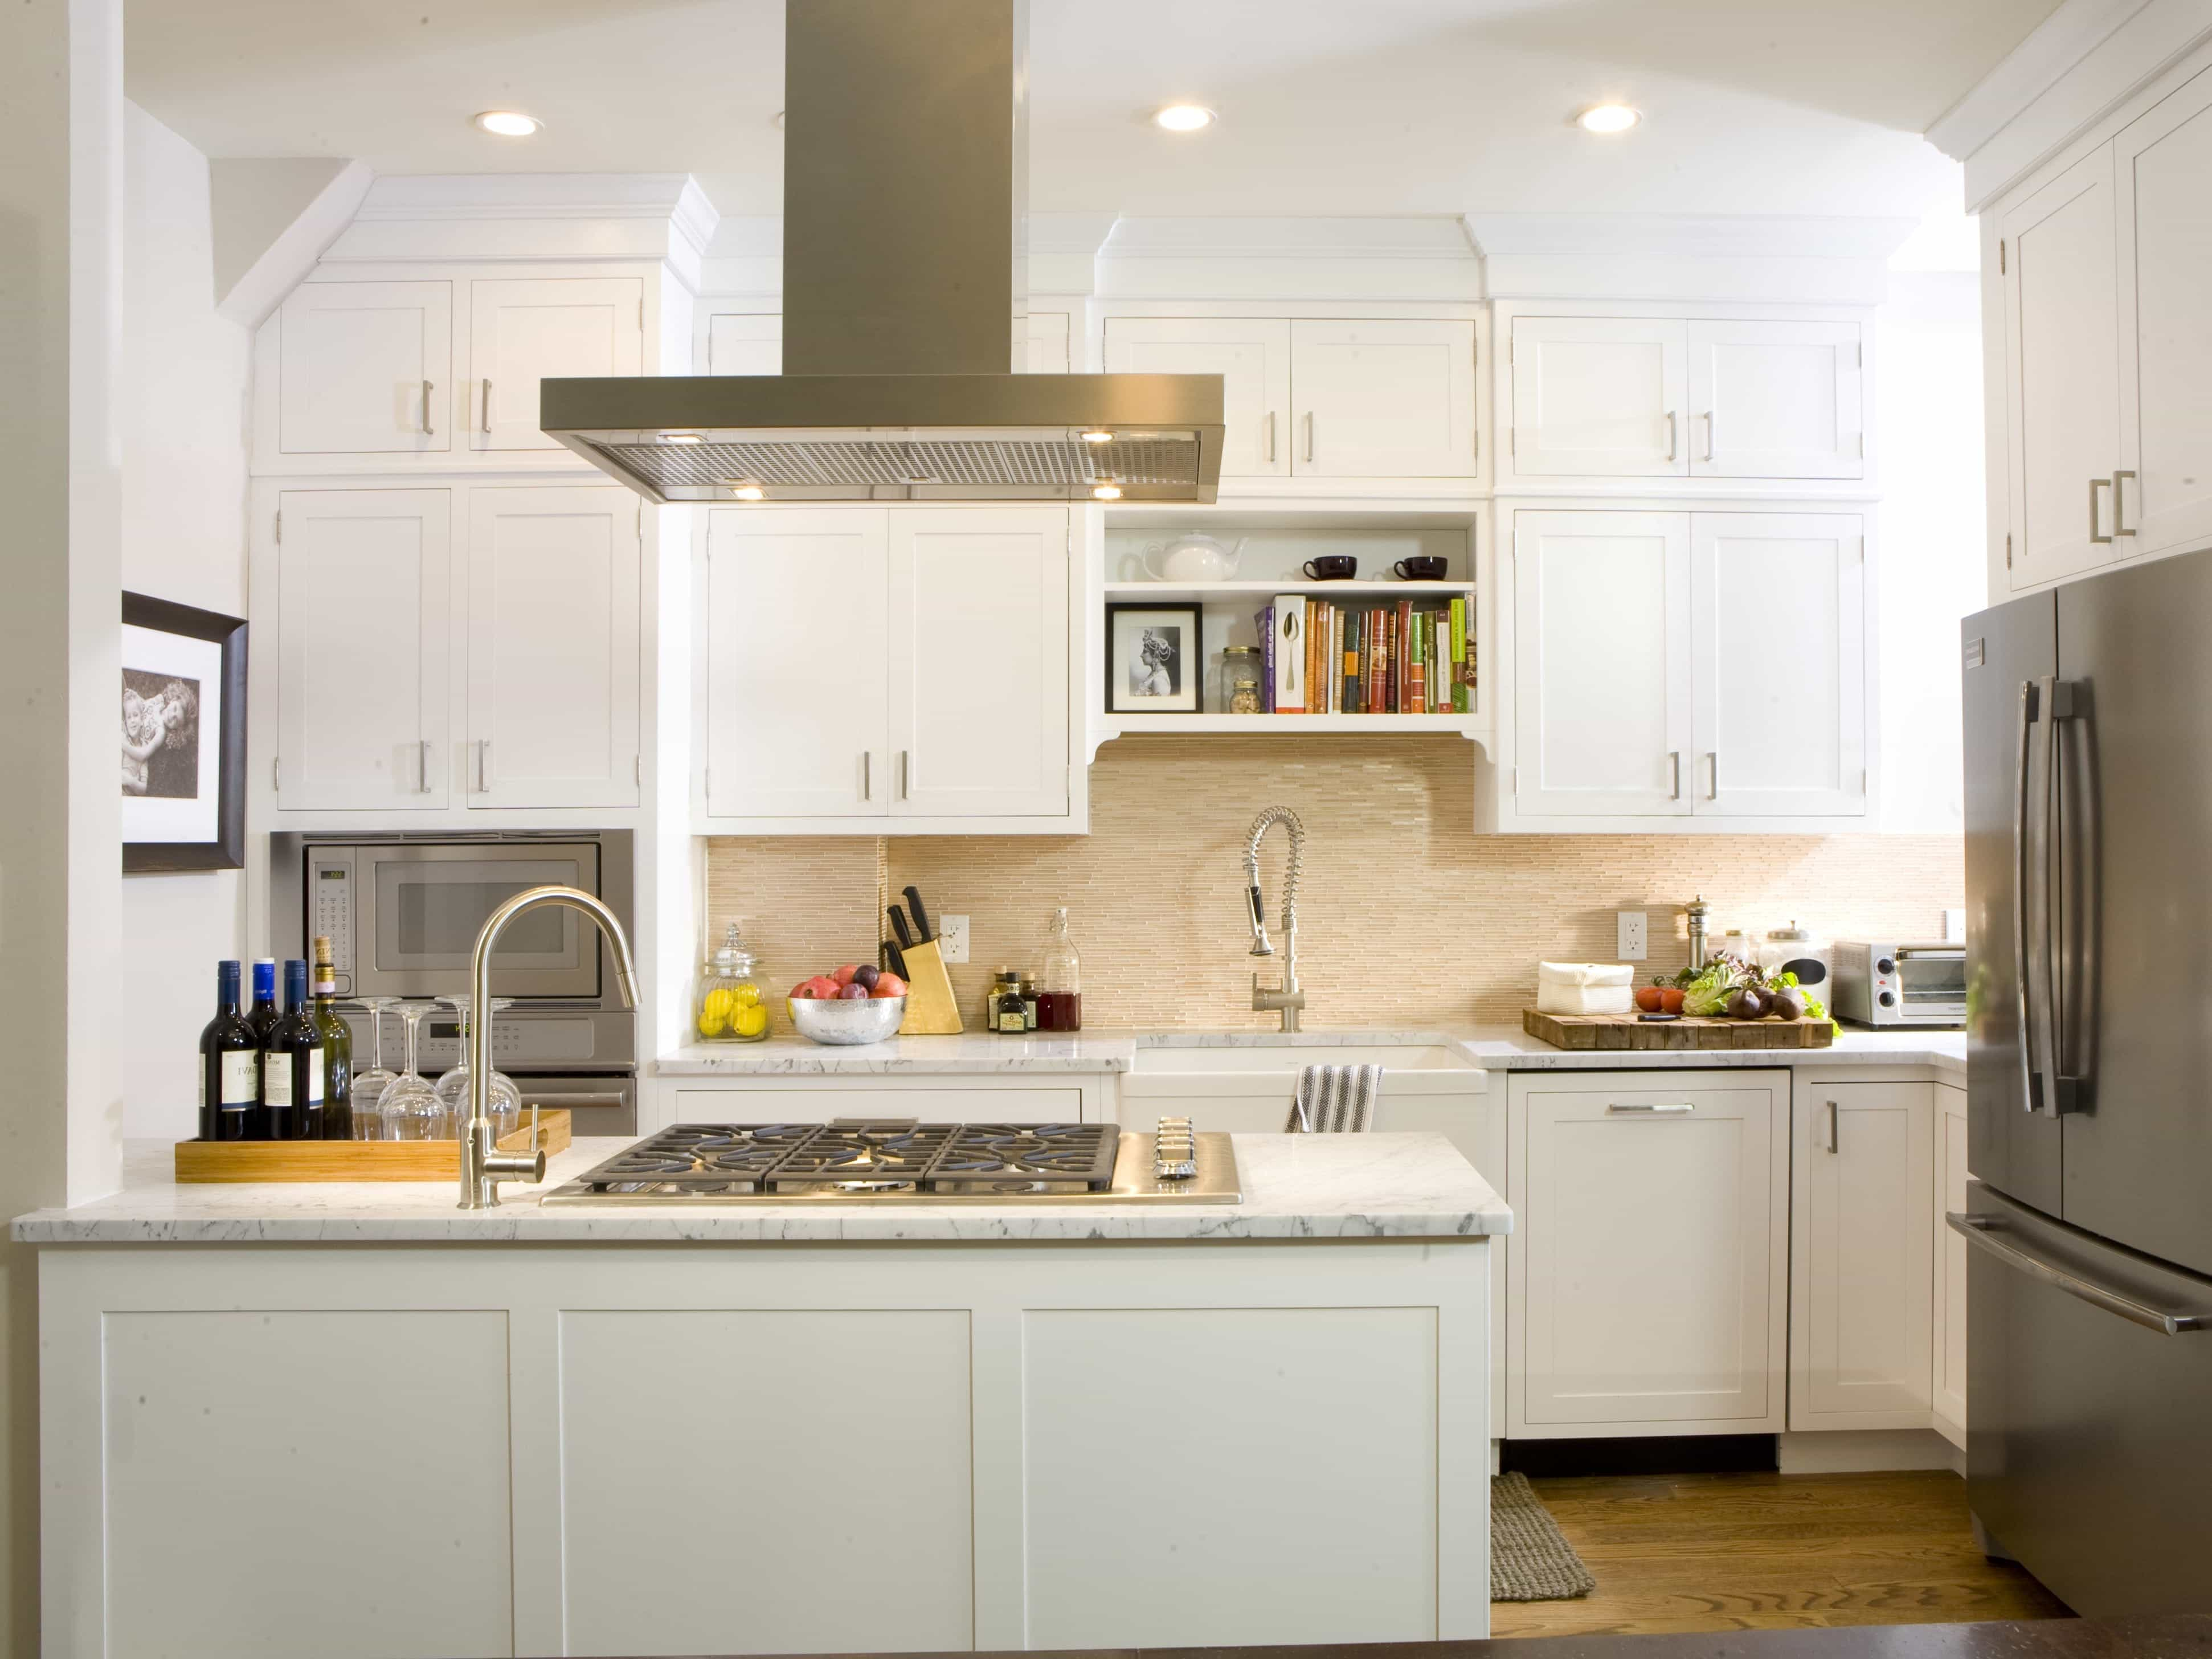 White Transitional Kitchen Cabinets With Marble Countertops (Image 25 of 26)